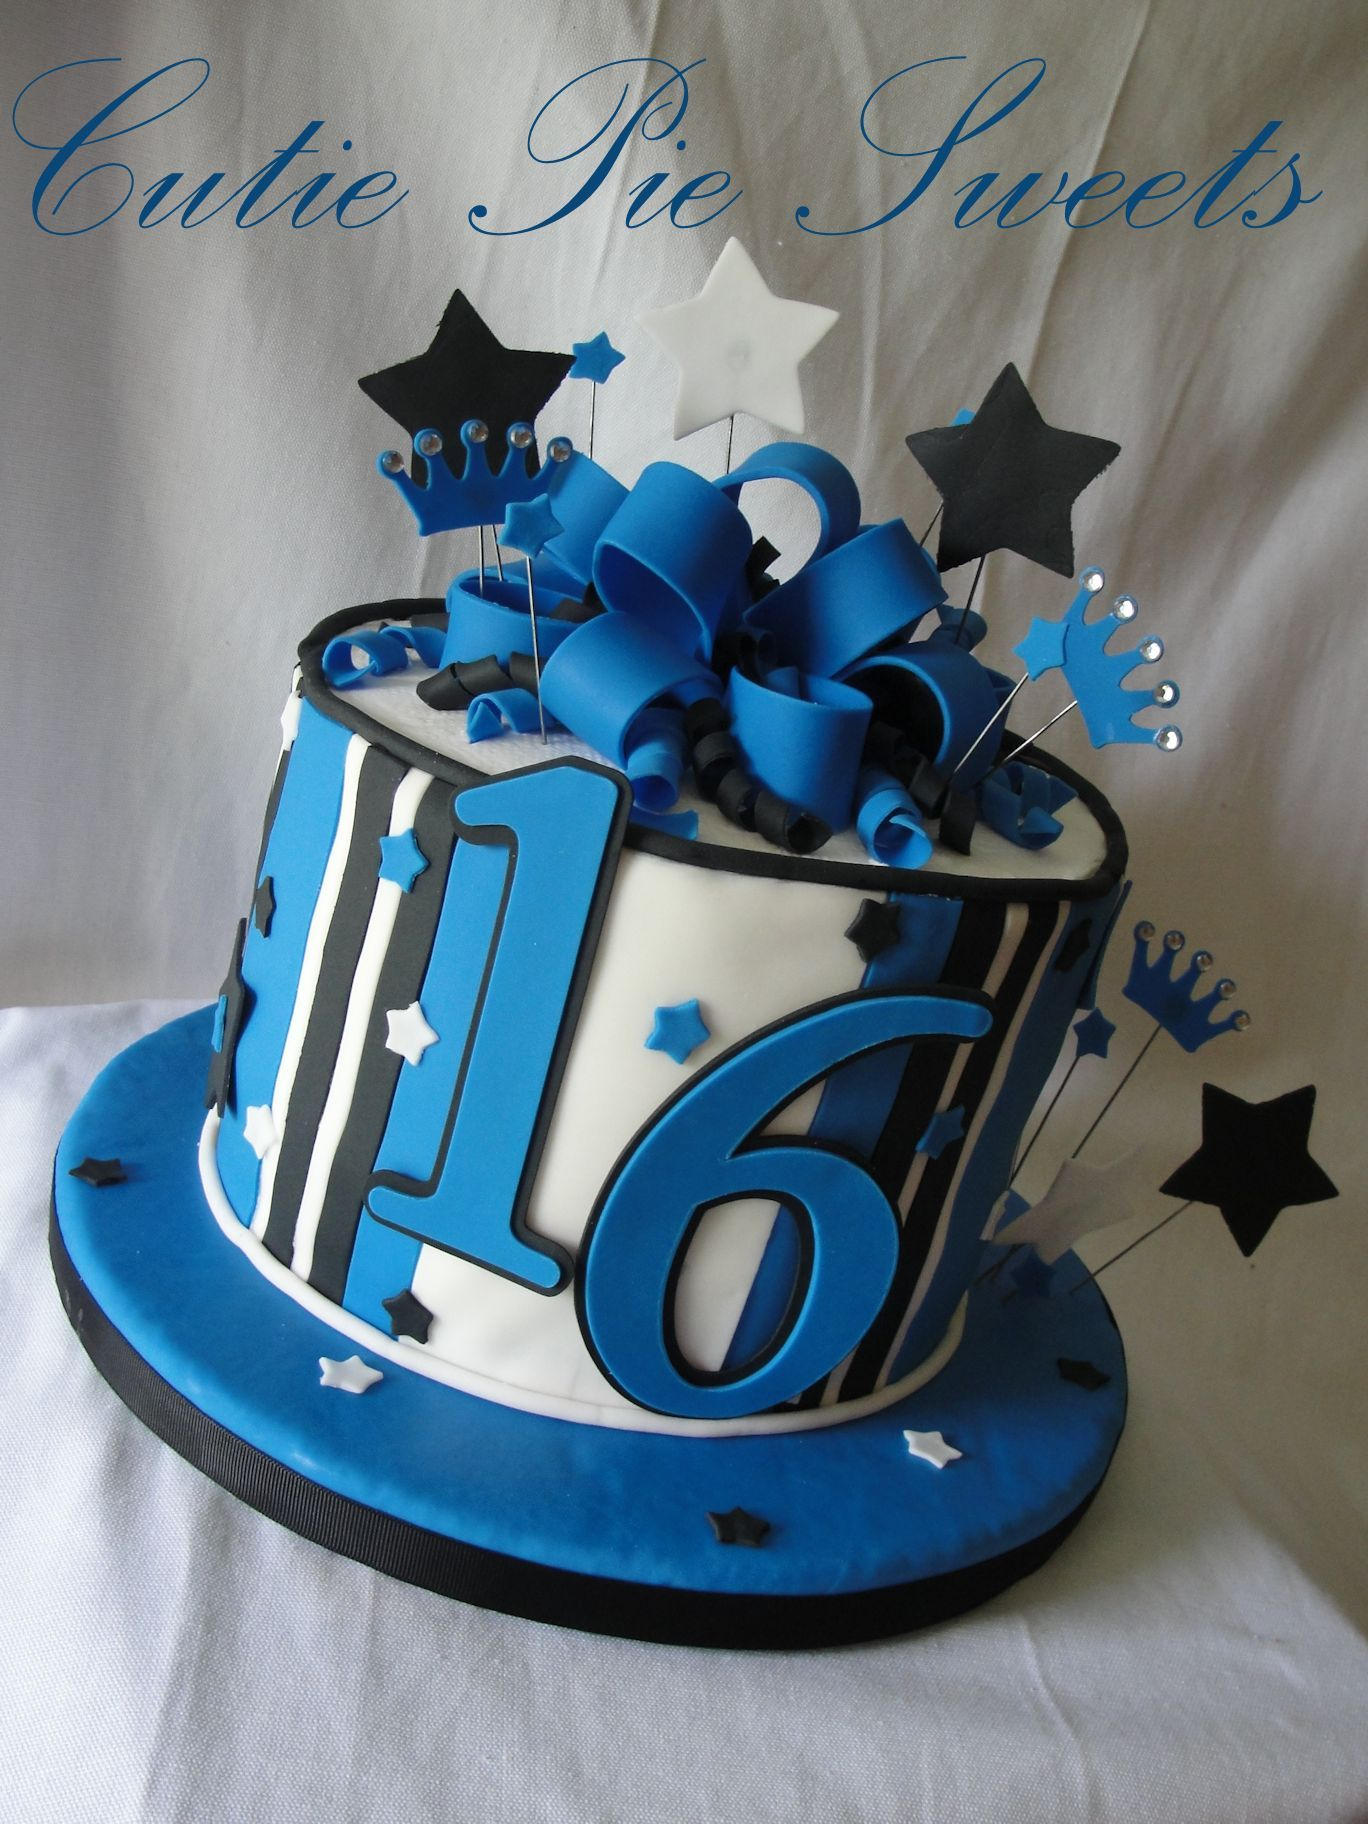 Blue Birthday Cake Black Blue White 16th Birthday Cake Cakes Cupcakes 16